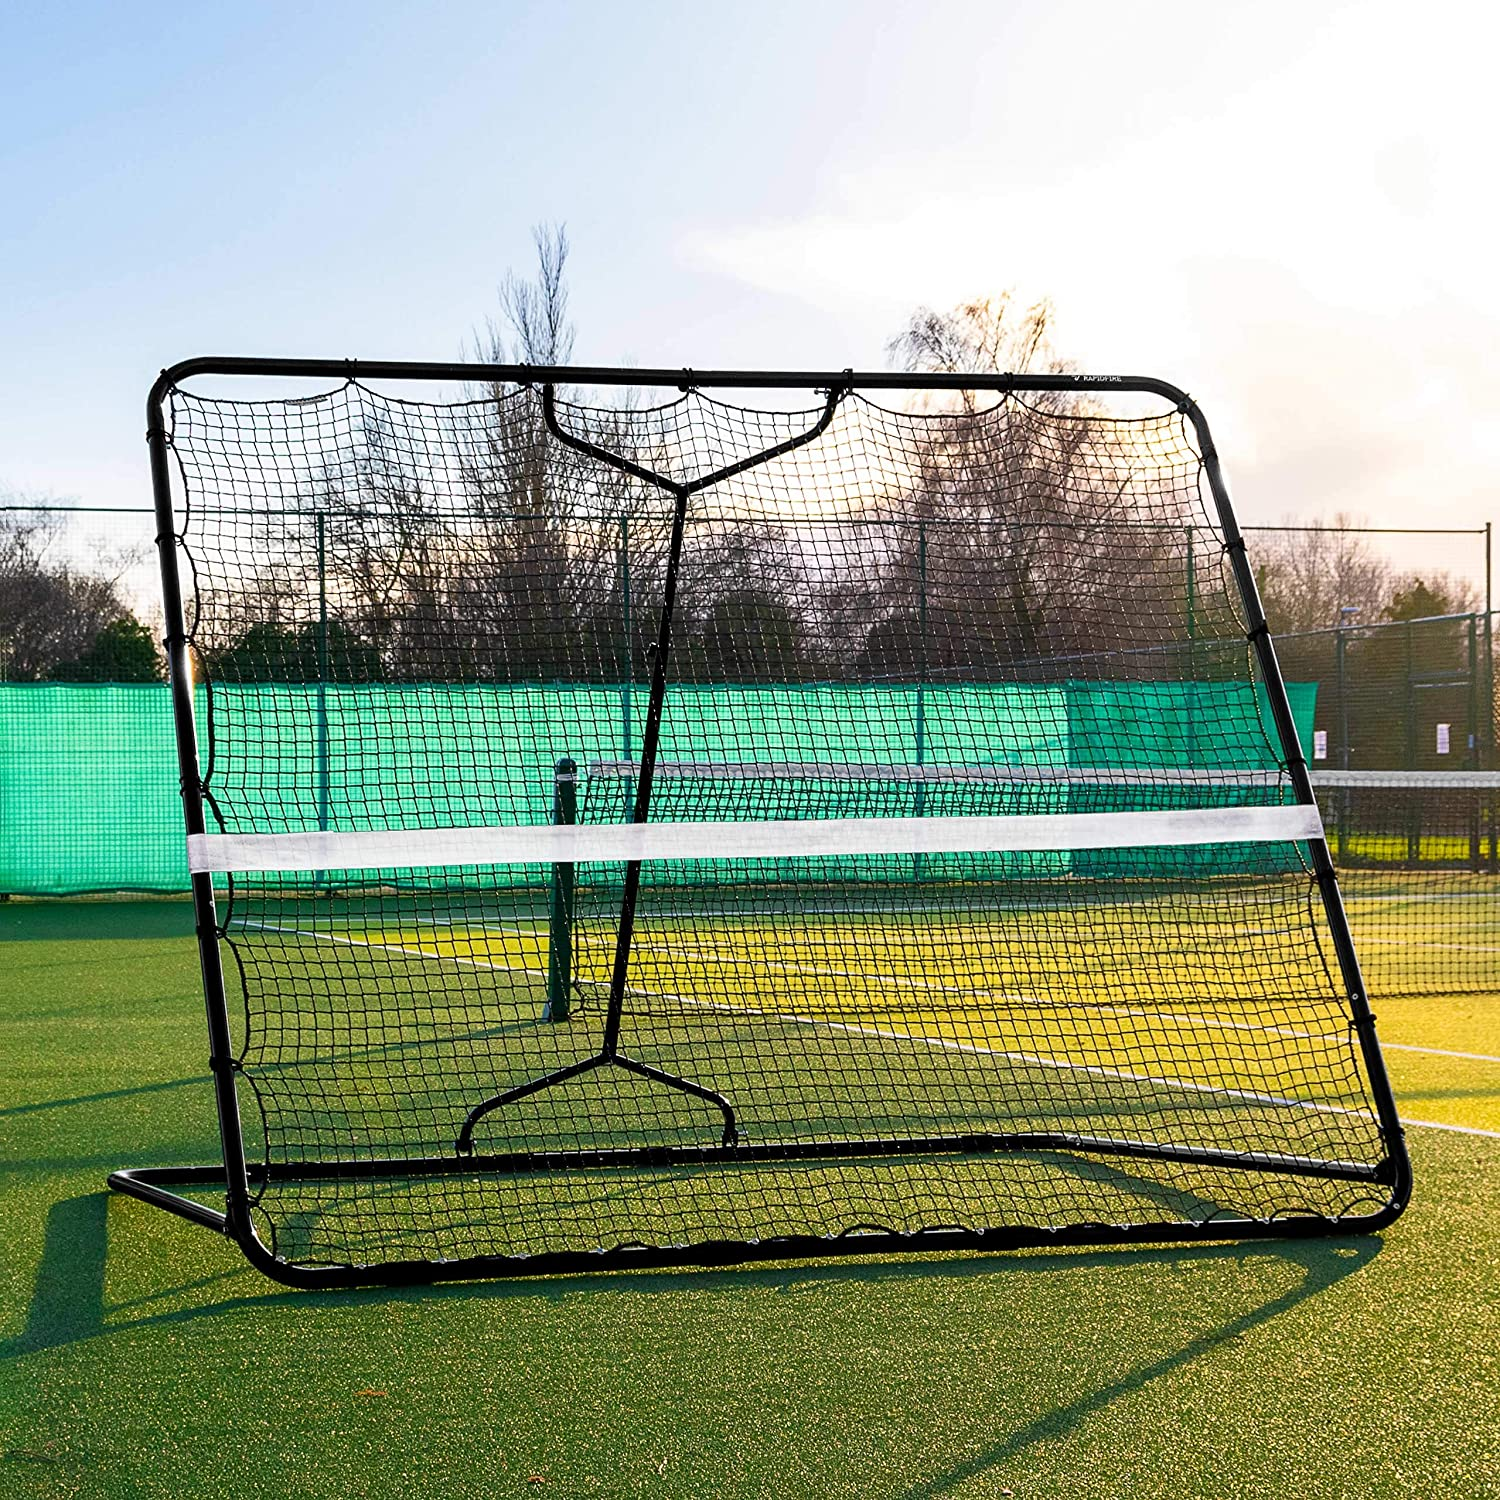 Net World Sports RapidFire Mega Tennis Rebounder | Groundstroke & Volleying Practice (Small Or Large) (Large (7ft x 8ft)) : Sports & Outdoors